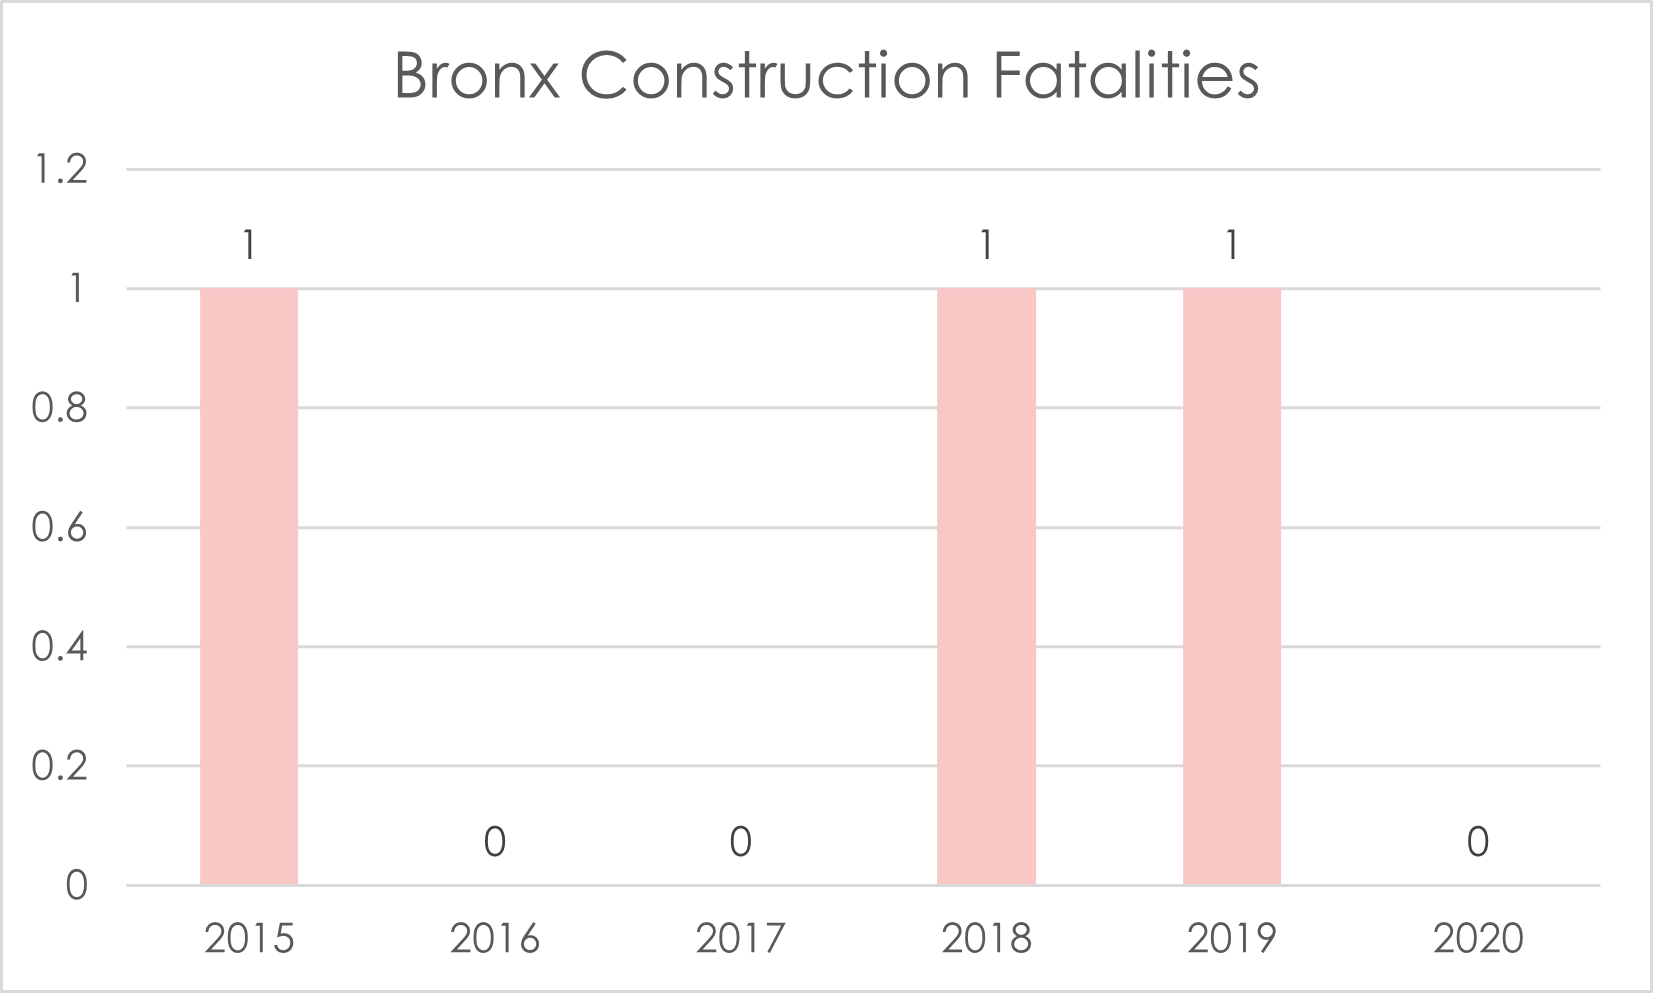 Bronx fatal construction accidents 2020